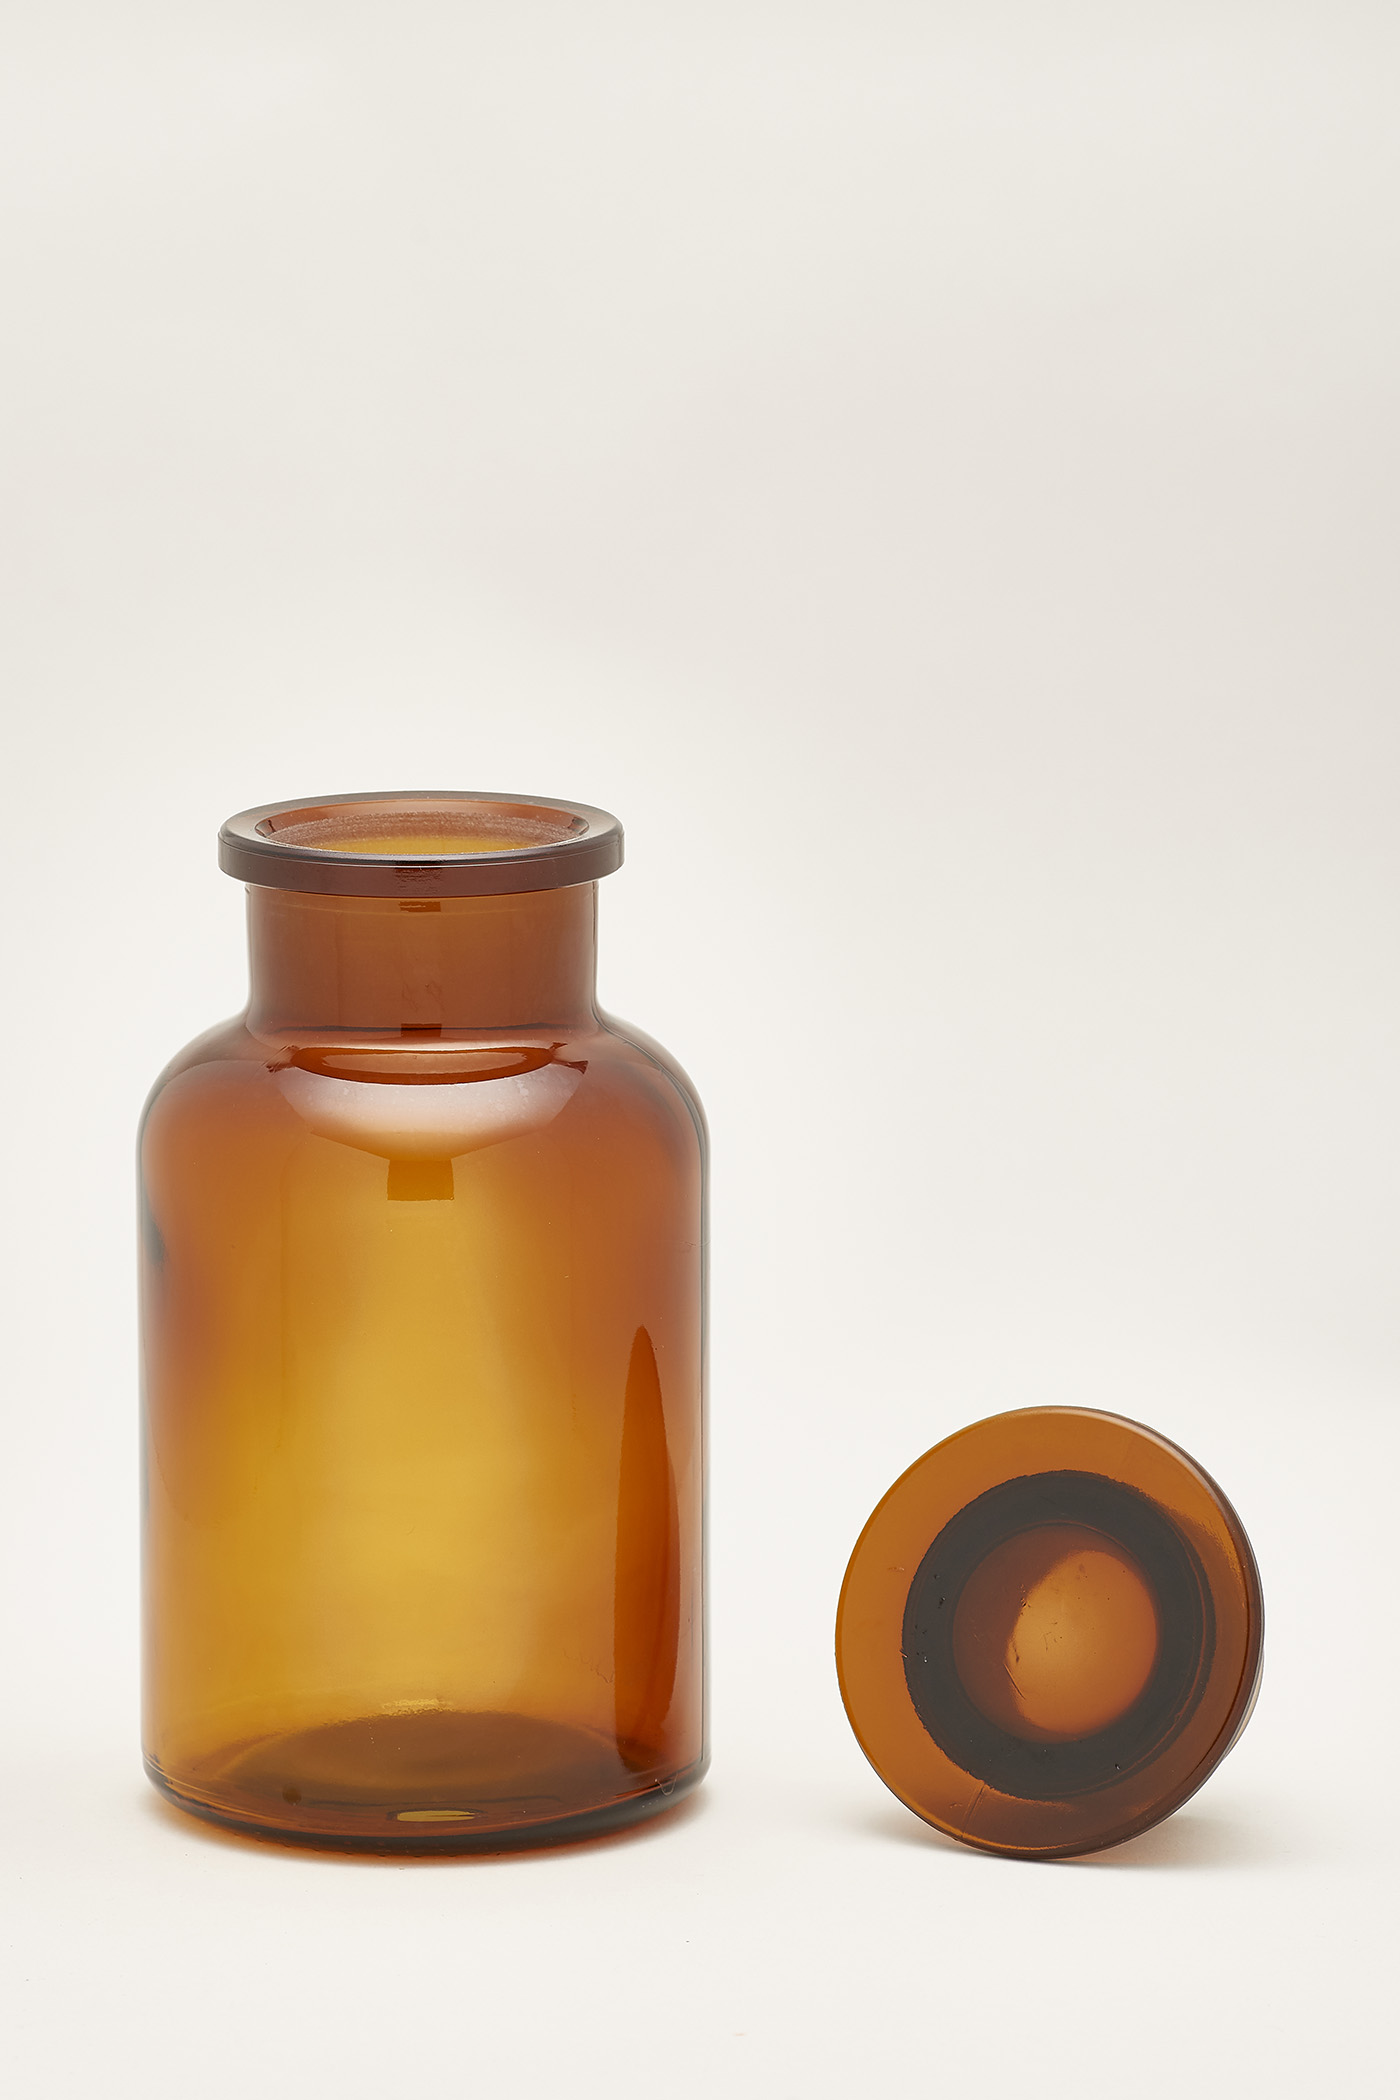 Trendglas Large Apothecary Bottle